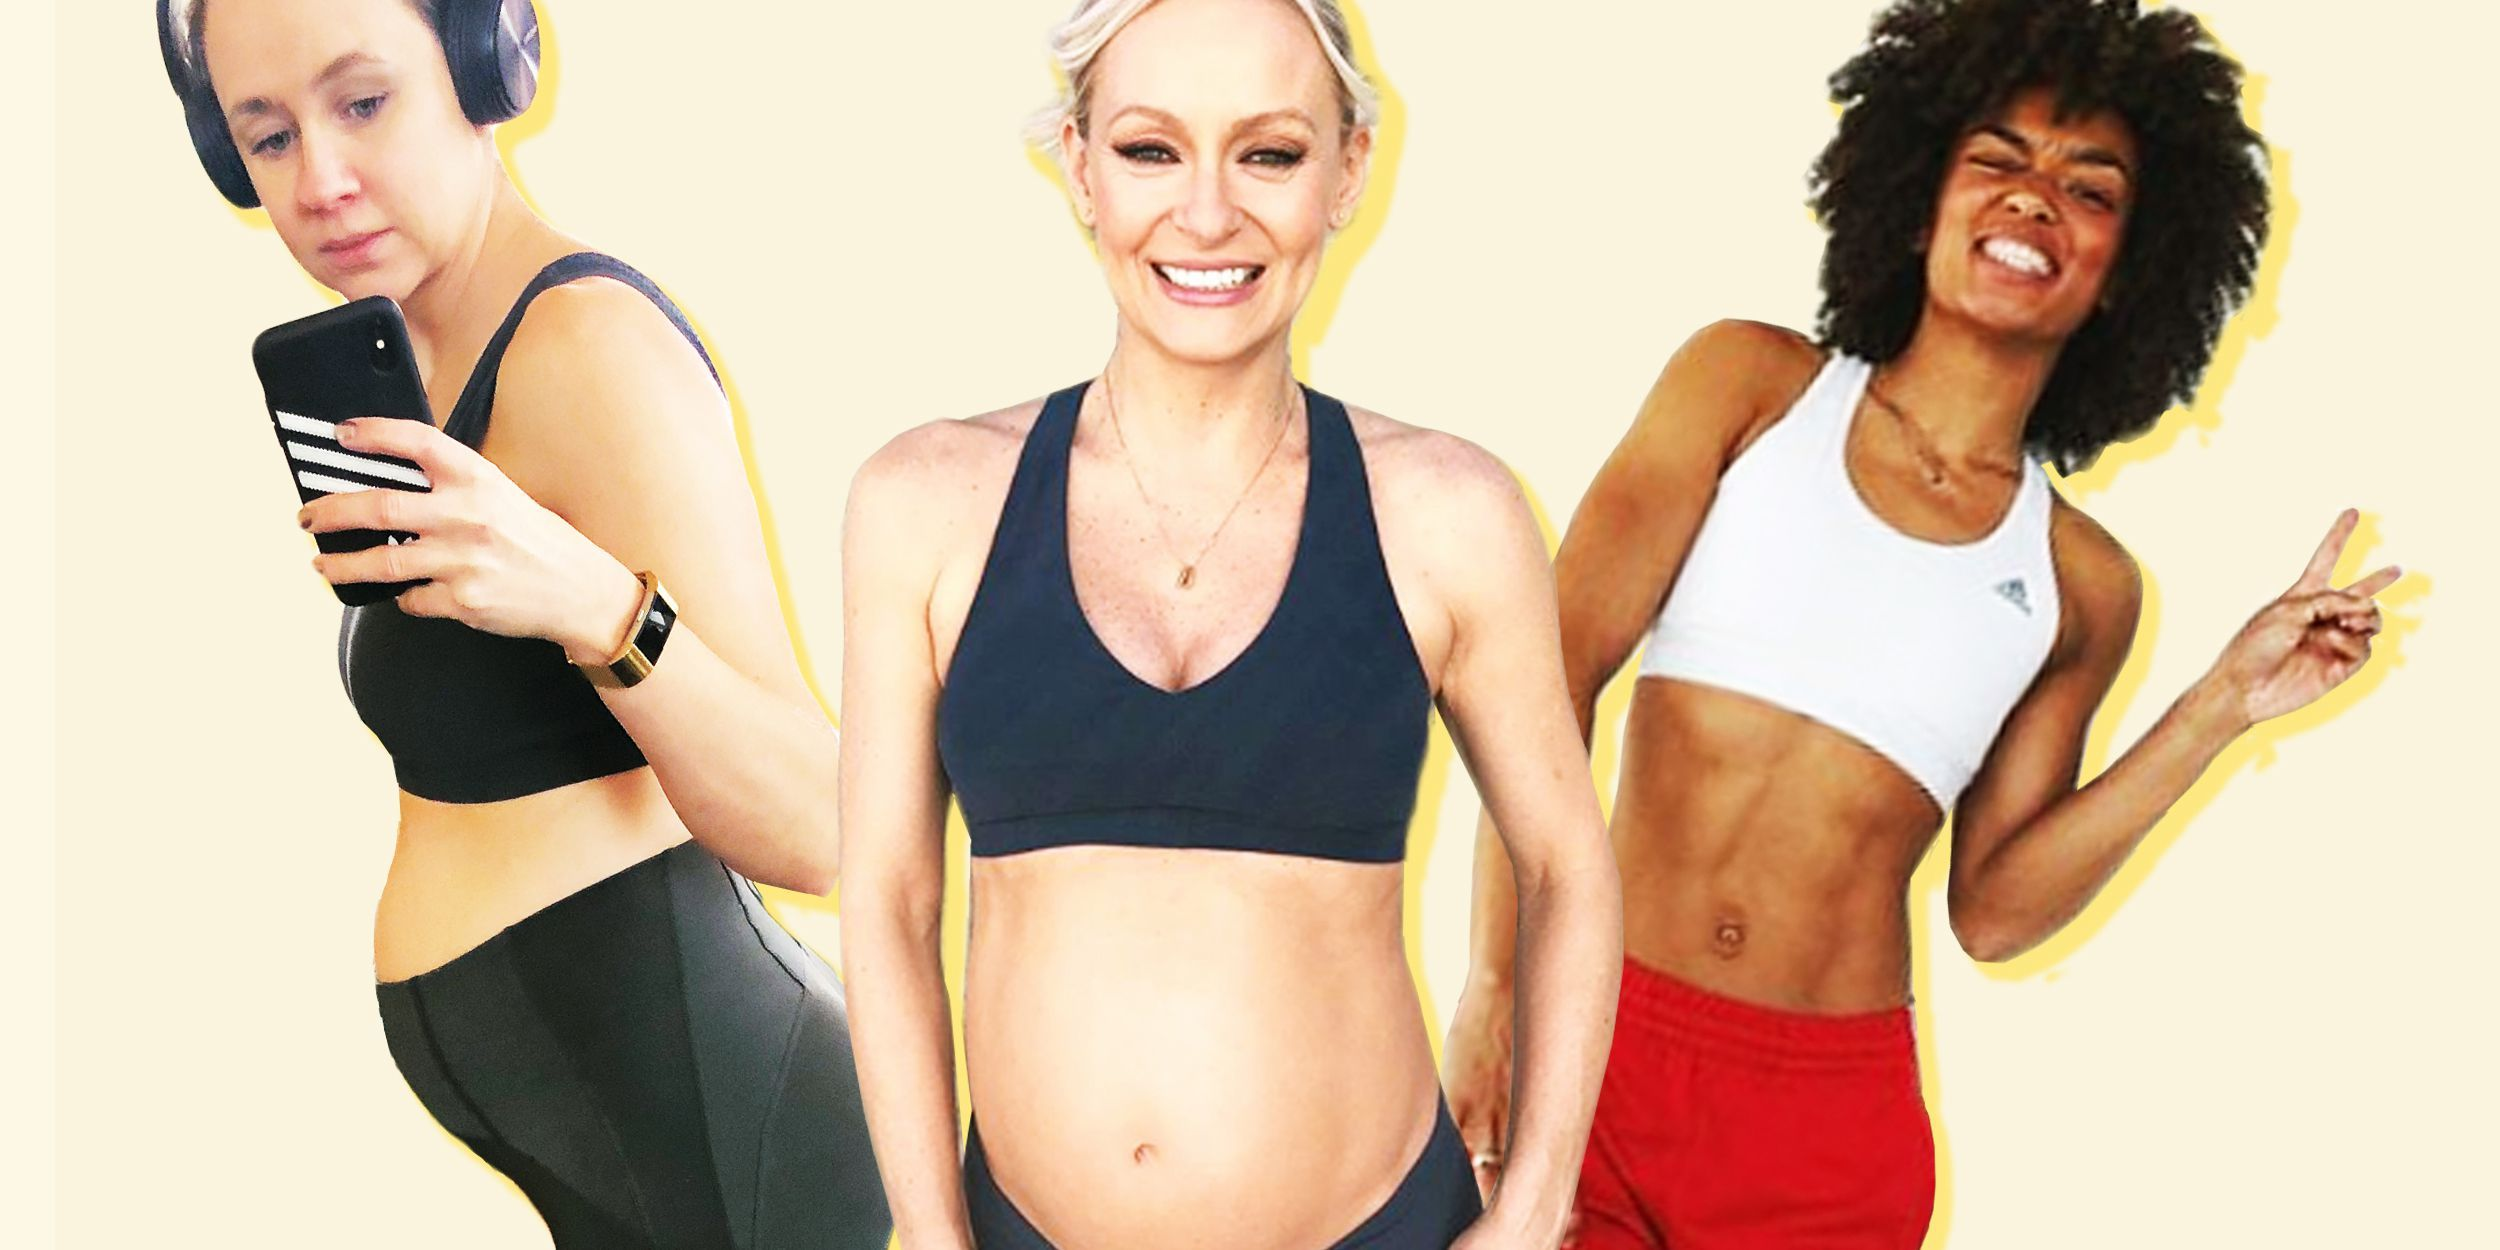 My Pregnant Body - 3 Fitness Influencers On Working Out Until Birth And Coping With Changing Shape